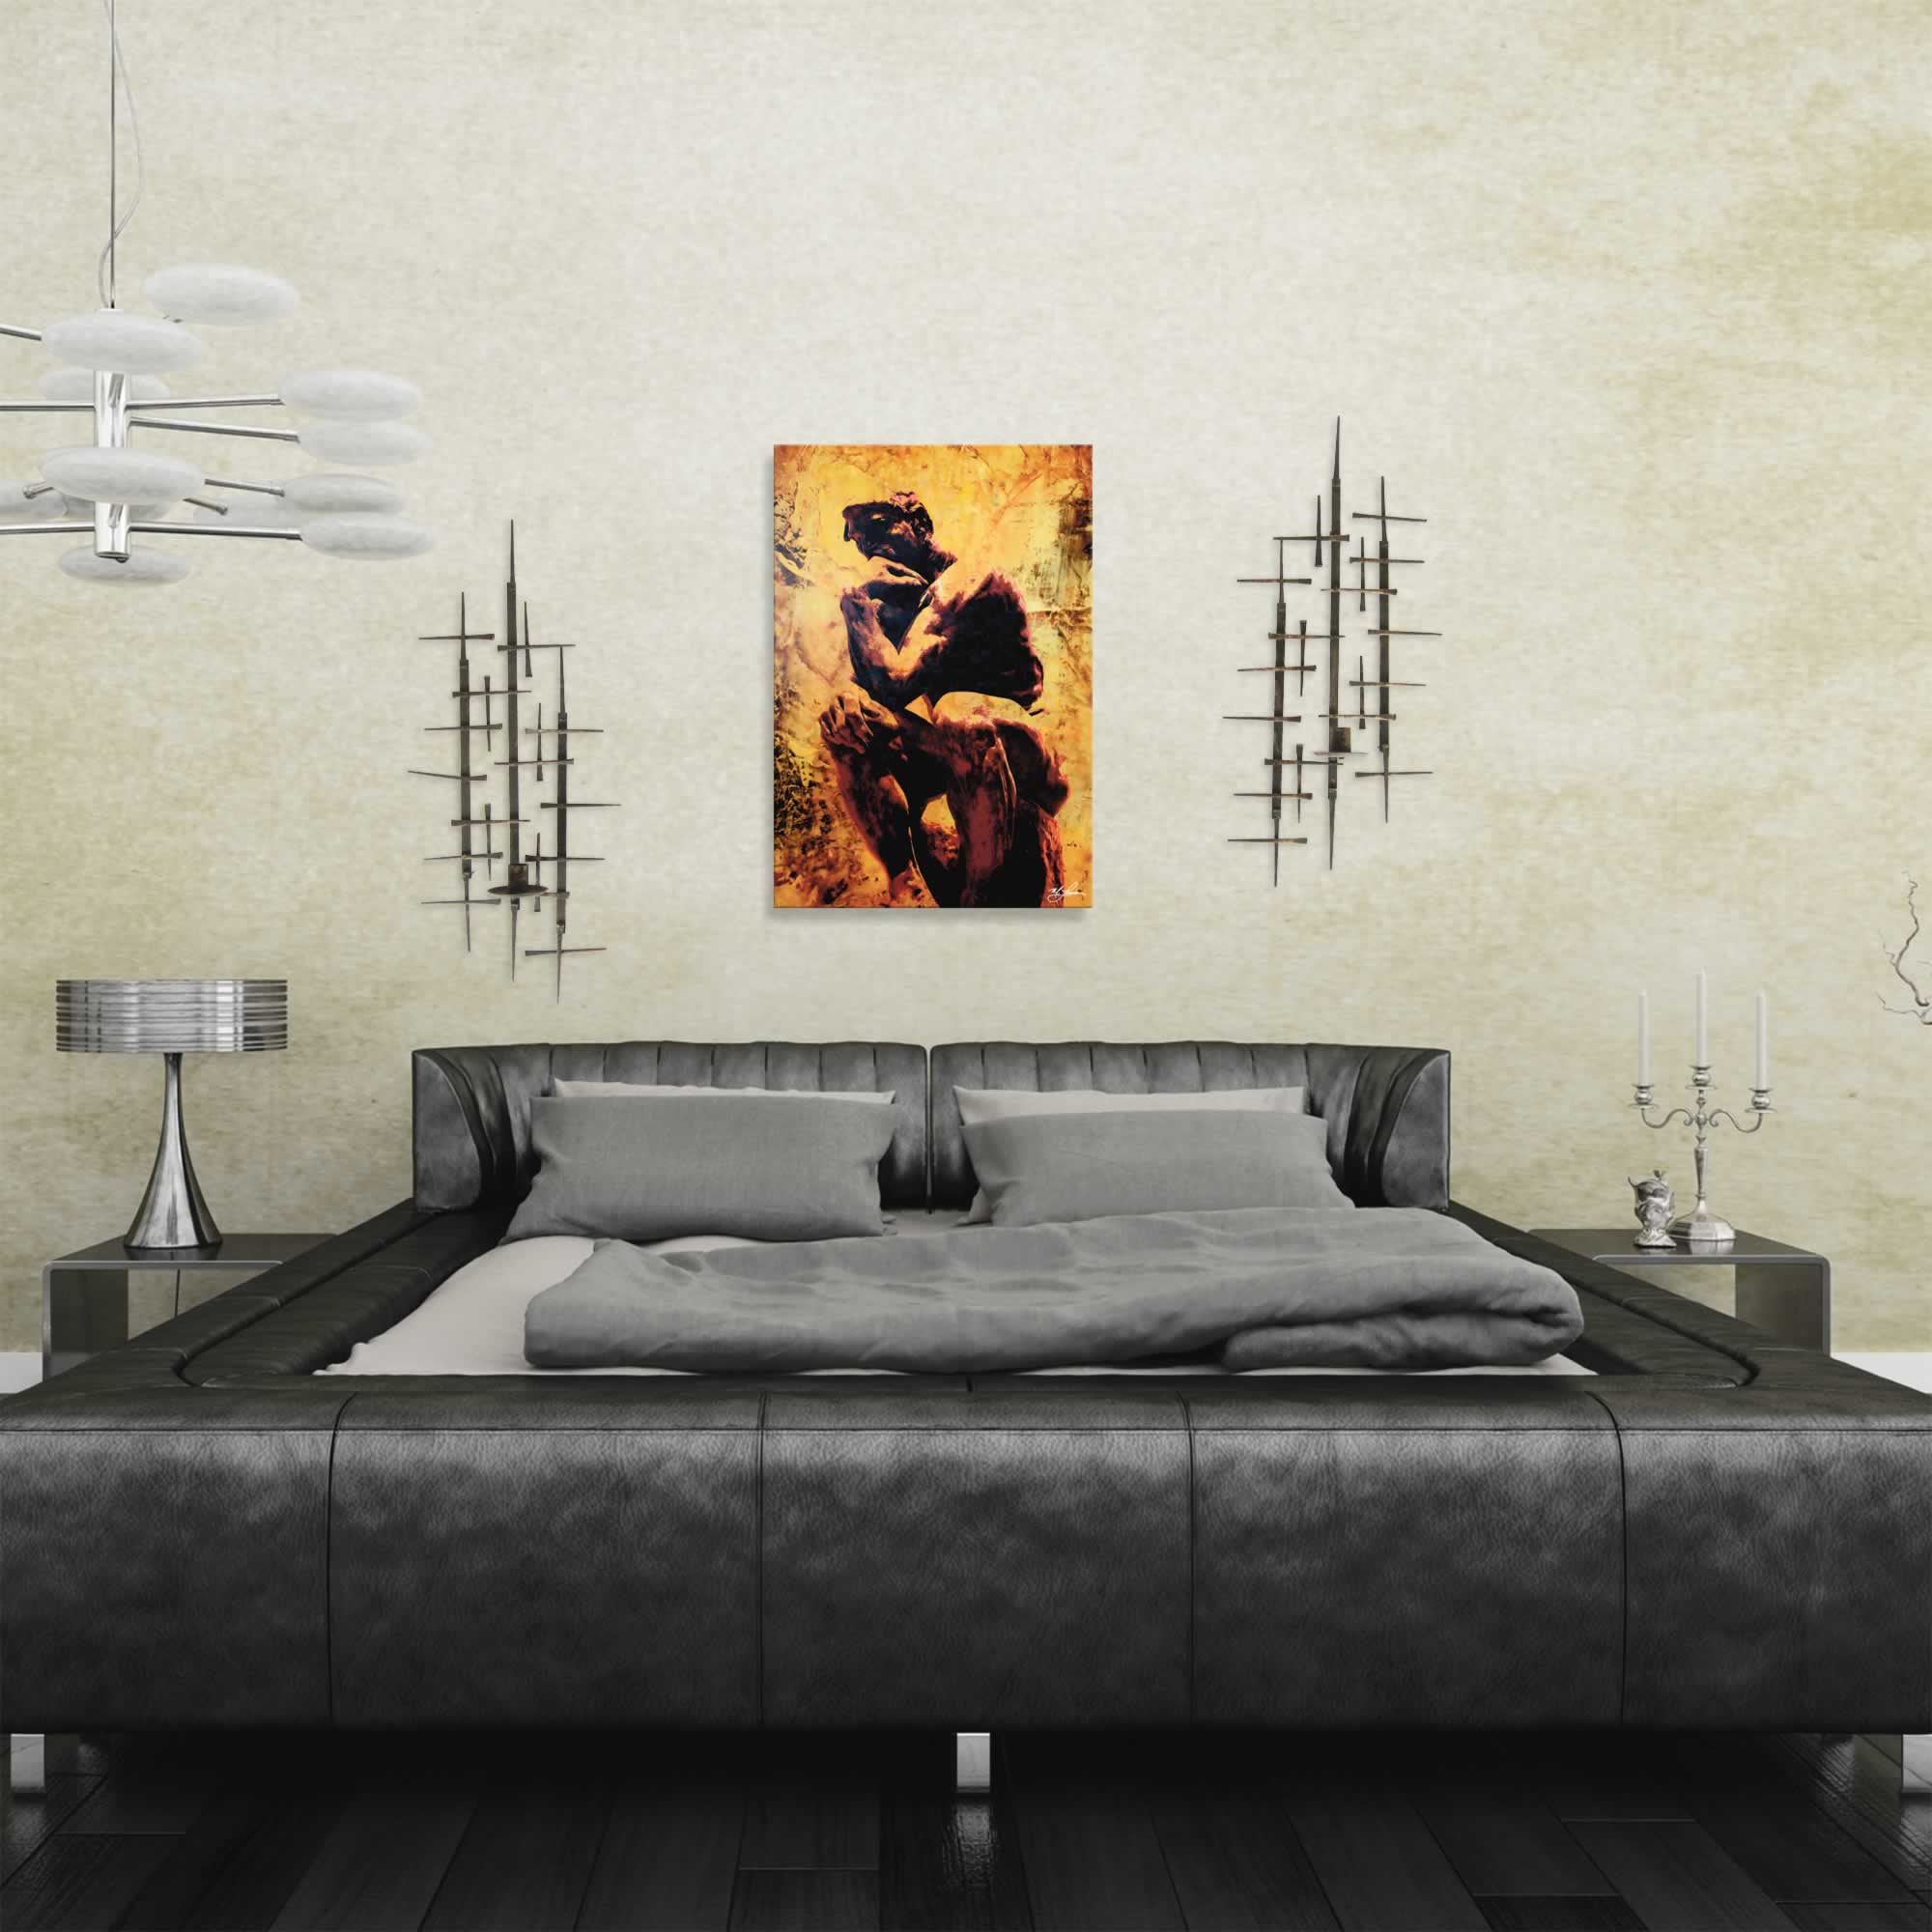 Rodin Clarified Thought by Mark Lewis - Contemporary Pop Art on Metal - Lifestyle View